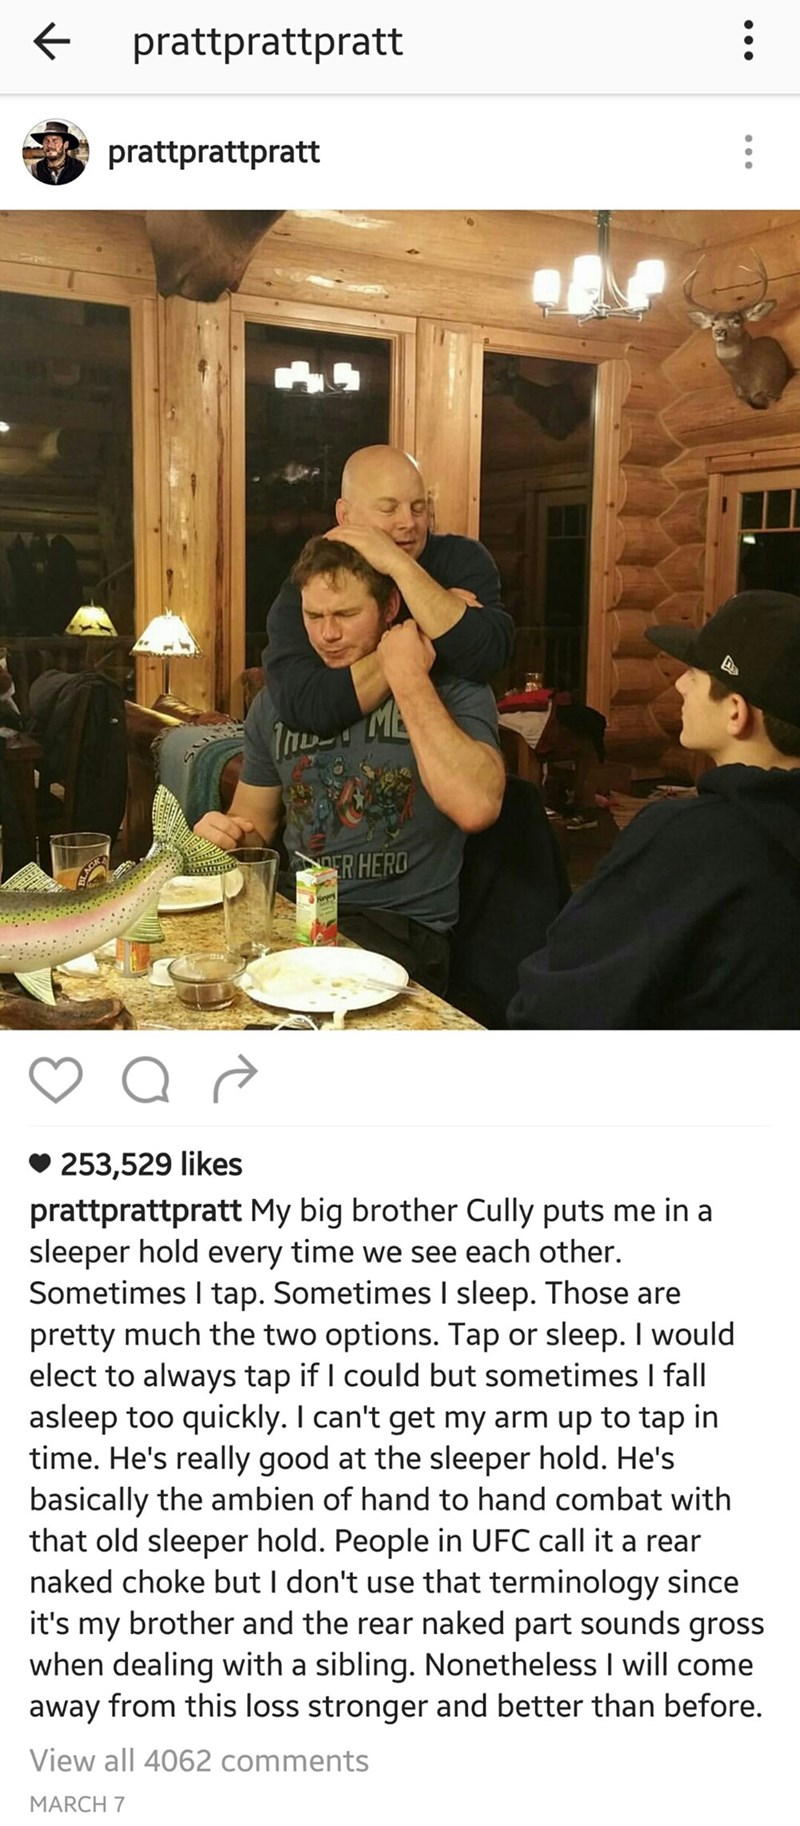 Meal - prattprattpratt prattprattpratt ER HERD 253,529 likes prattprattpratt My big brother Cully puts me in a sleeper hold every time we see each other. Sometimes I tap. Sometimes I sleep. Those are pretty much the two options. Tap or sleep. I would elect to always tap if I could but sometimes I fall asleep too quickly. I can't get my arm up to tap in time. He's really good at the sleeper hold. He's basically the ambien of hand to hand combat with that old sleeper hold. People in UFC call it a